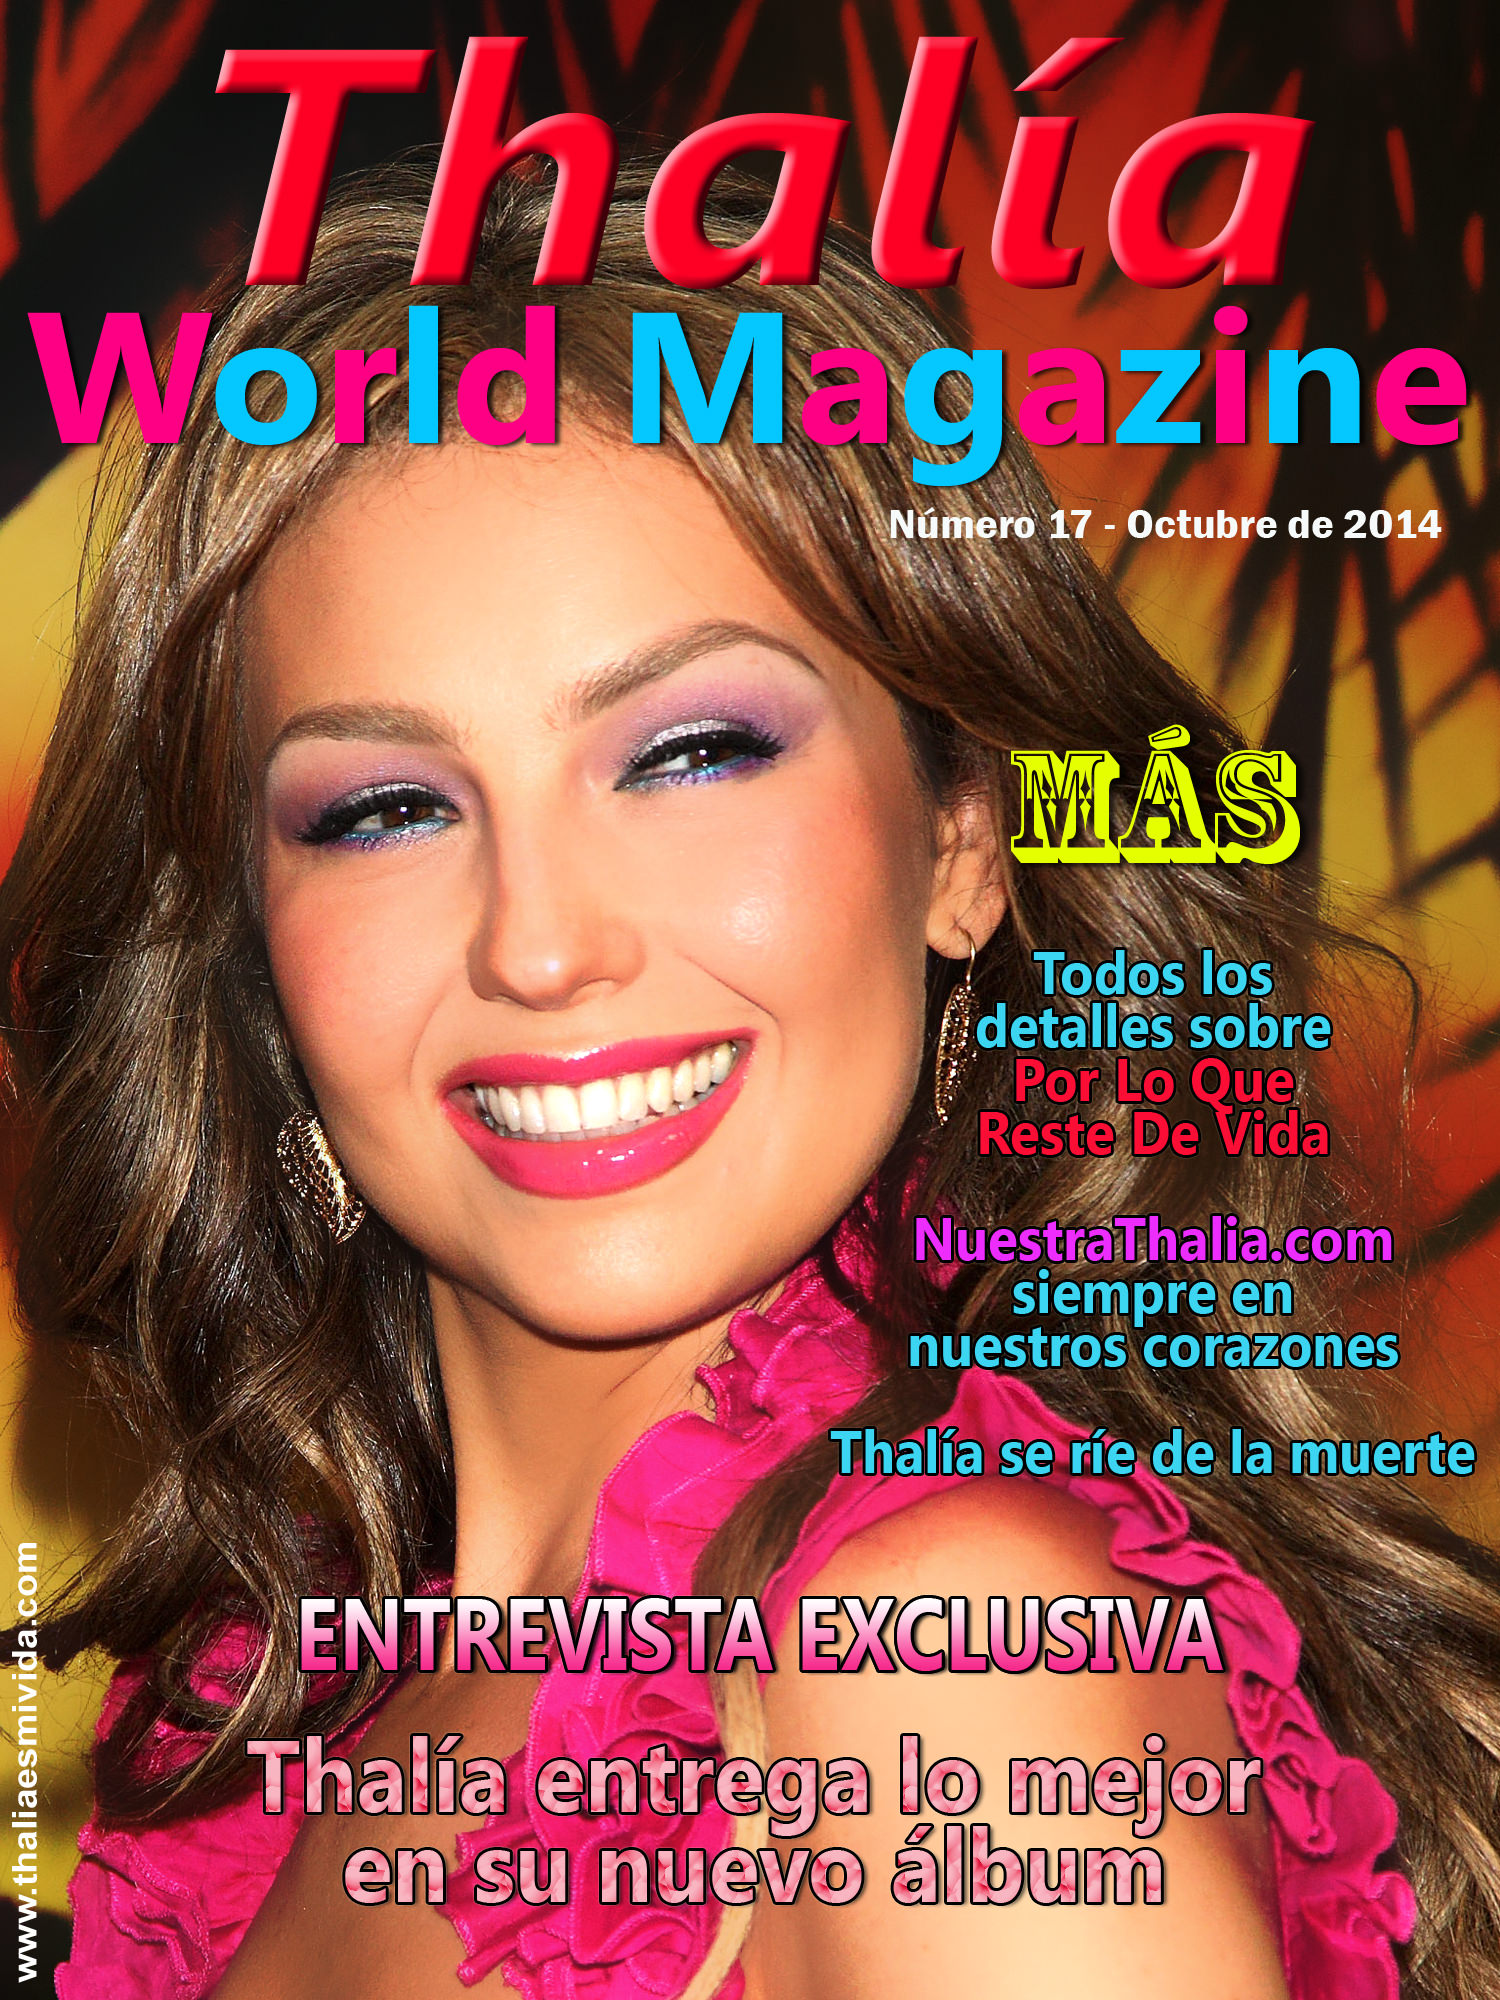 Thalia World Magazine 17